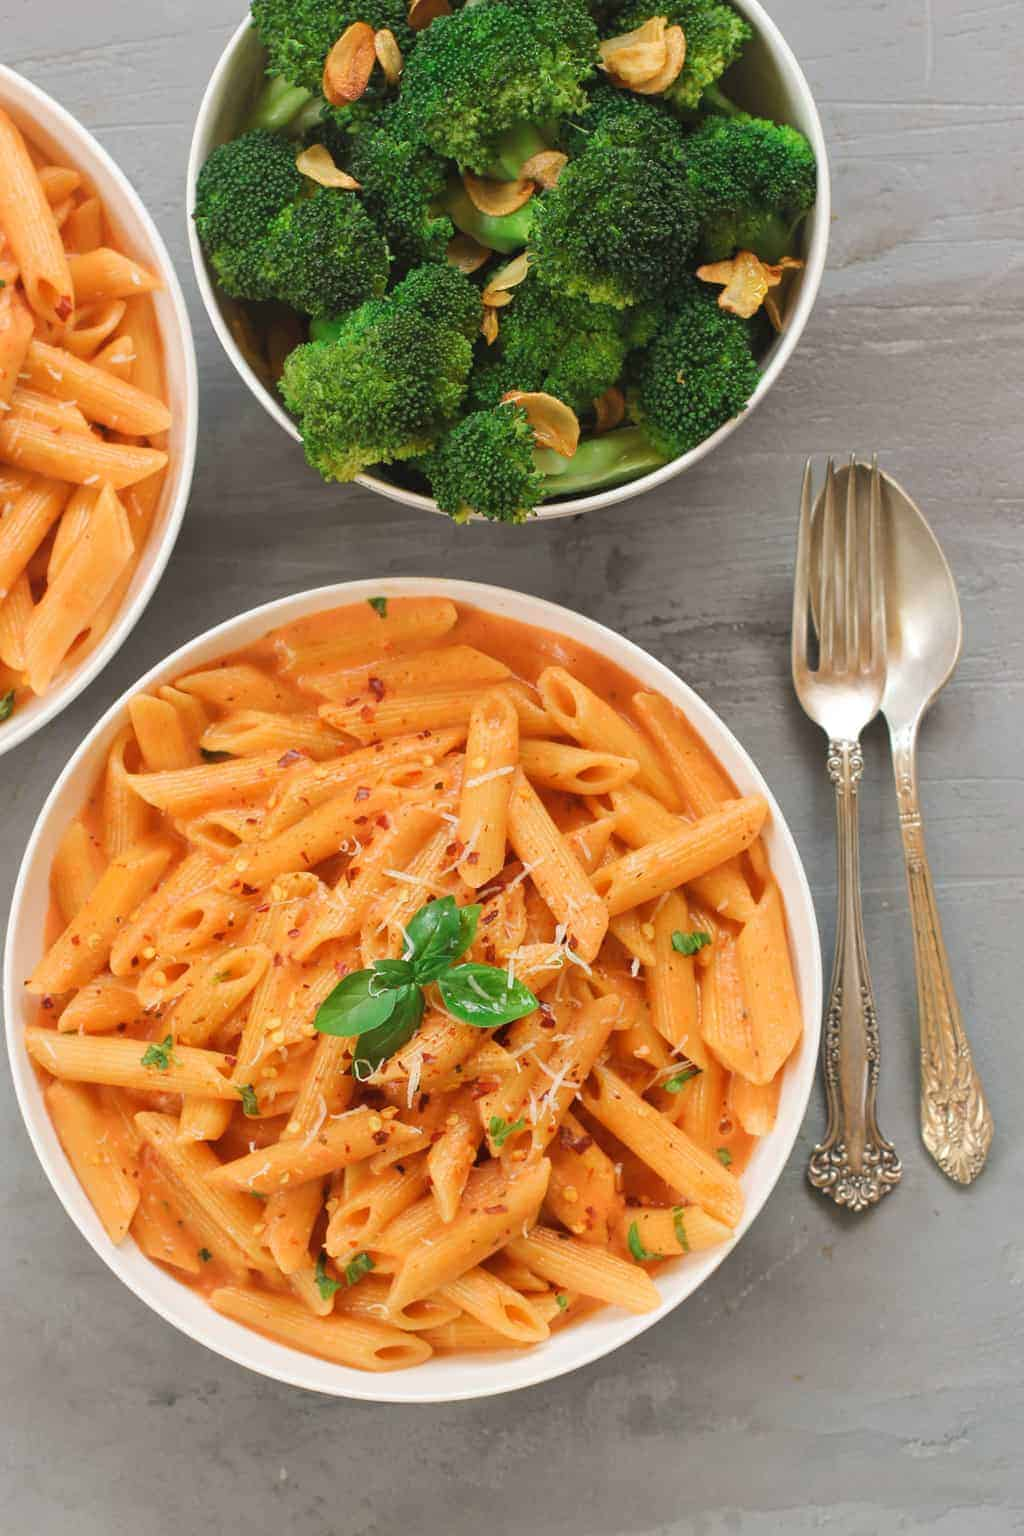 Pasta with Creamy Tomato Sauce served with broccoli